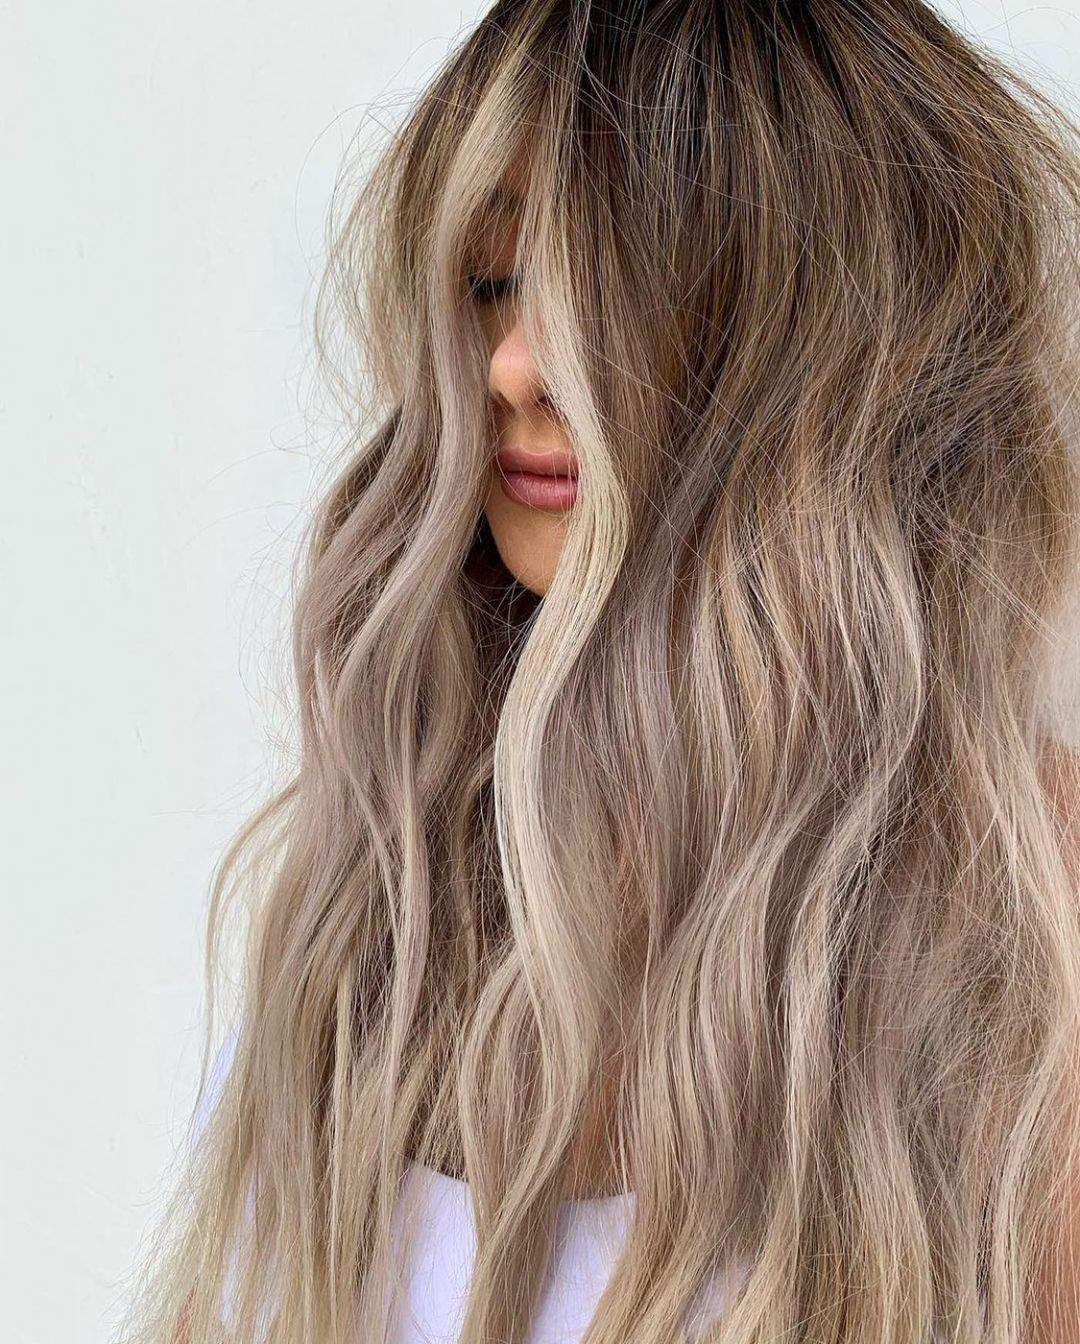 40+ Awesome Hairstyles For Girls With Long Hair images 7